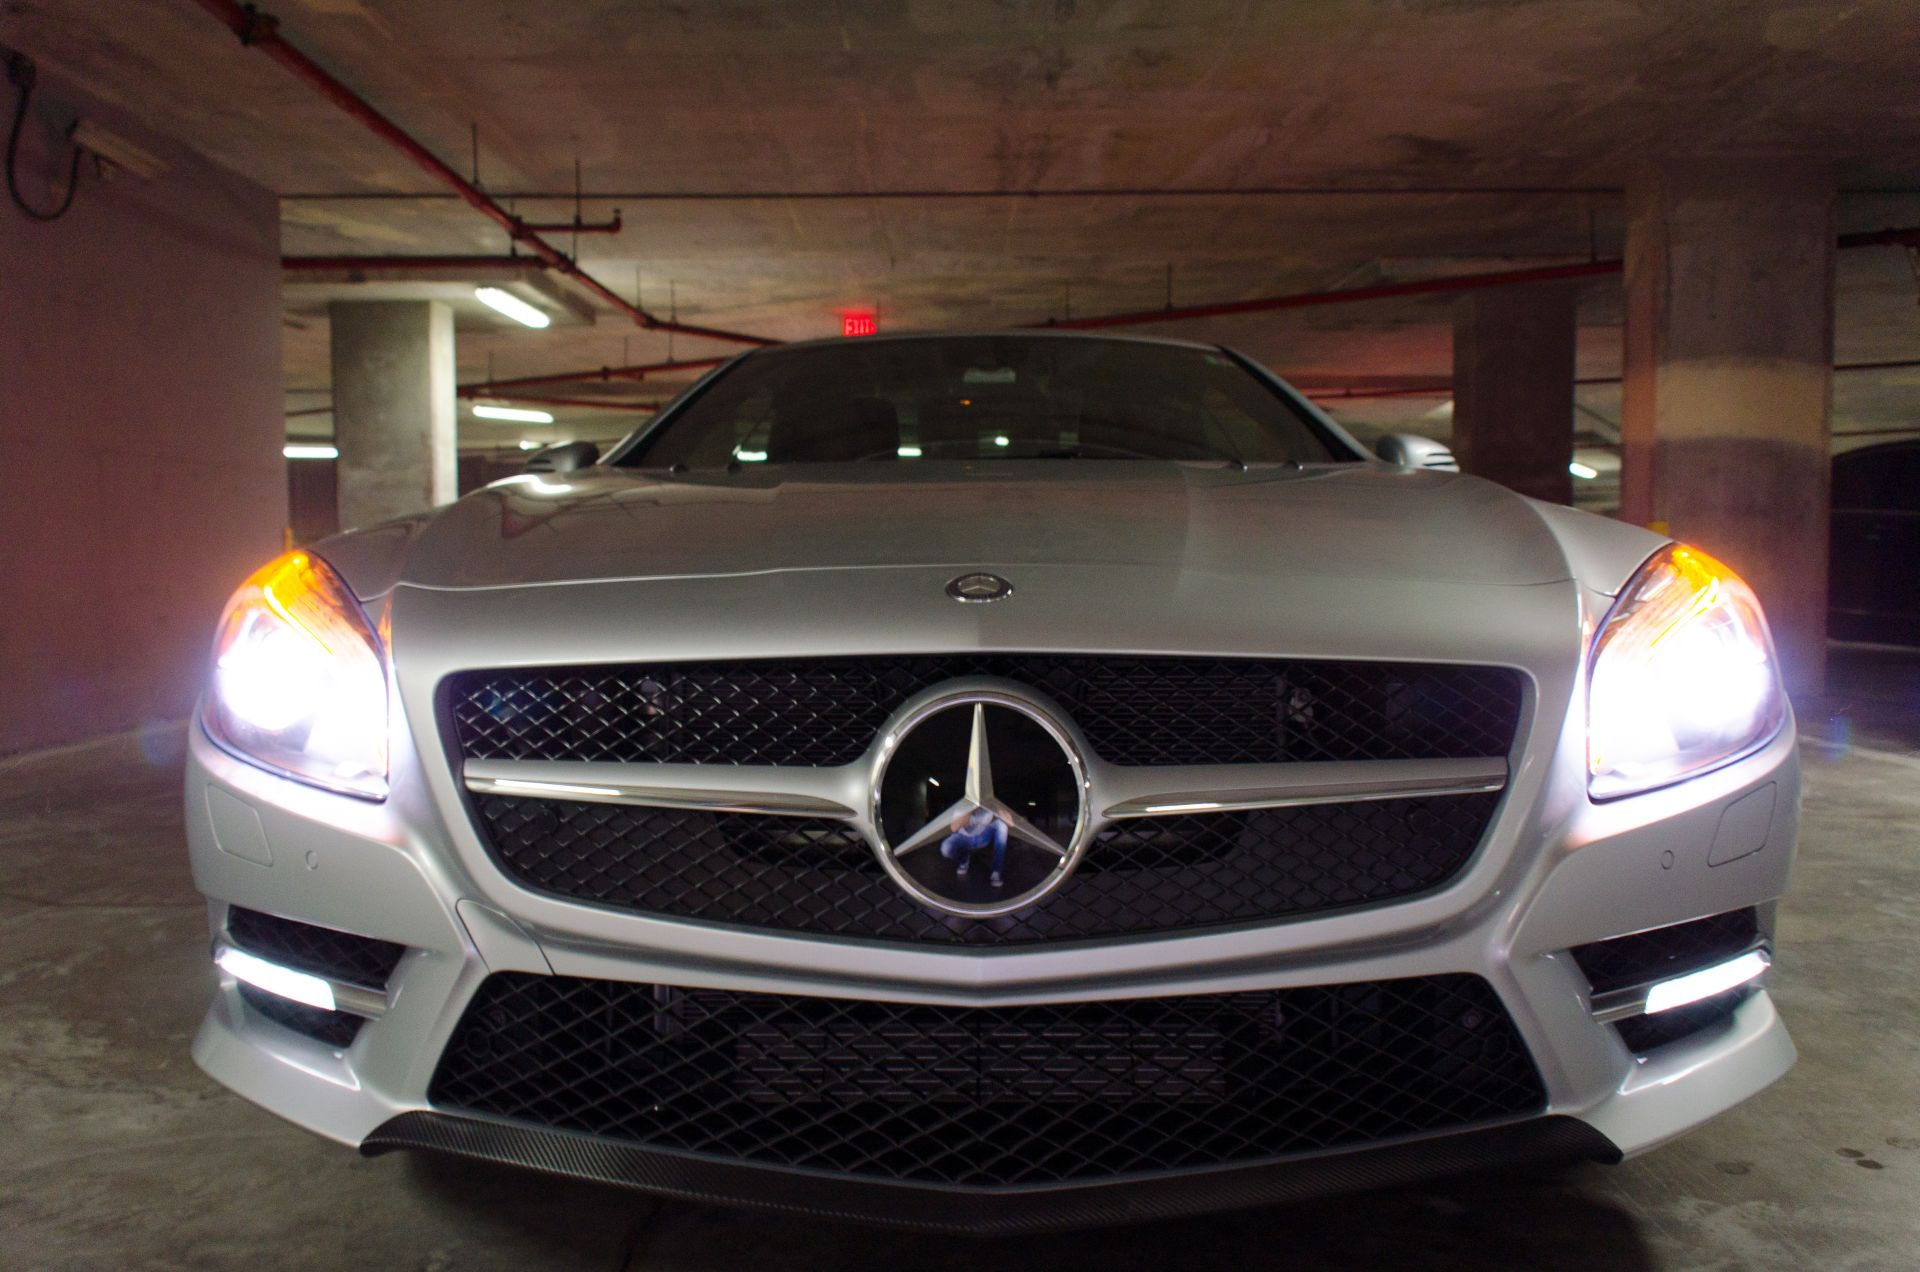 2013 mercedes benz sl550 more included in the sale of a 56th floor 2 bedroom condo at marina blue. Black Bedroom Furniture Sets. Home Design Ideas